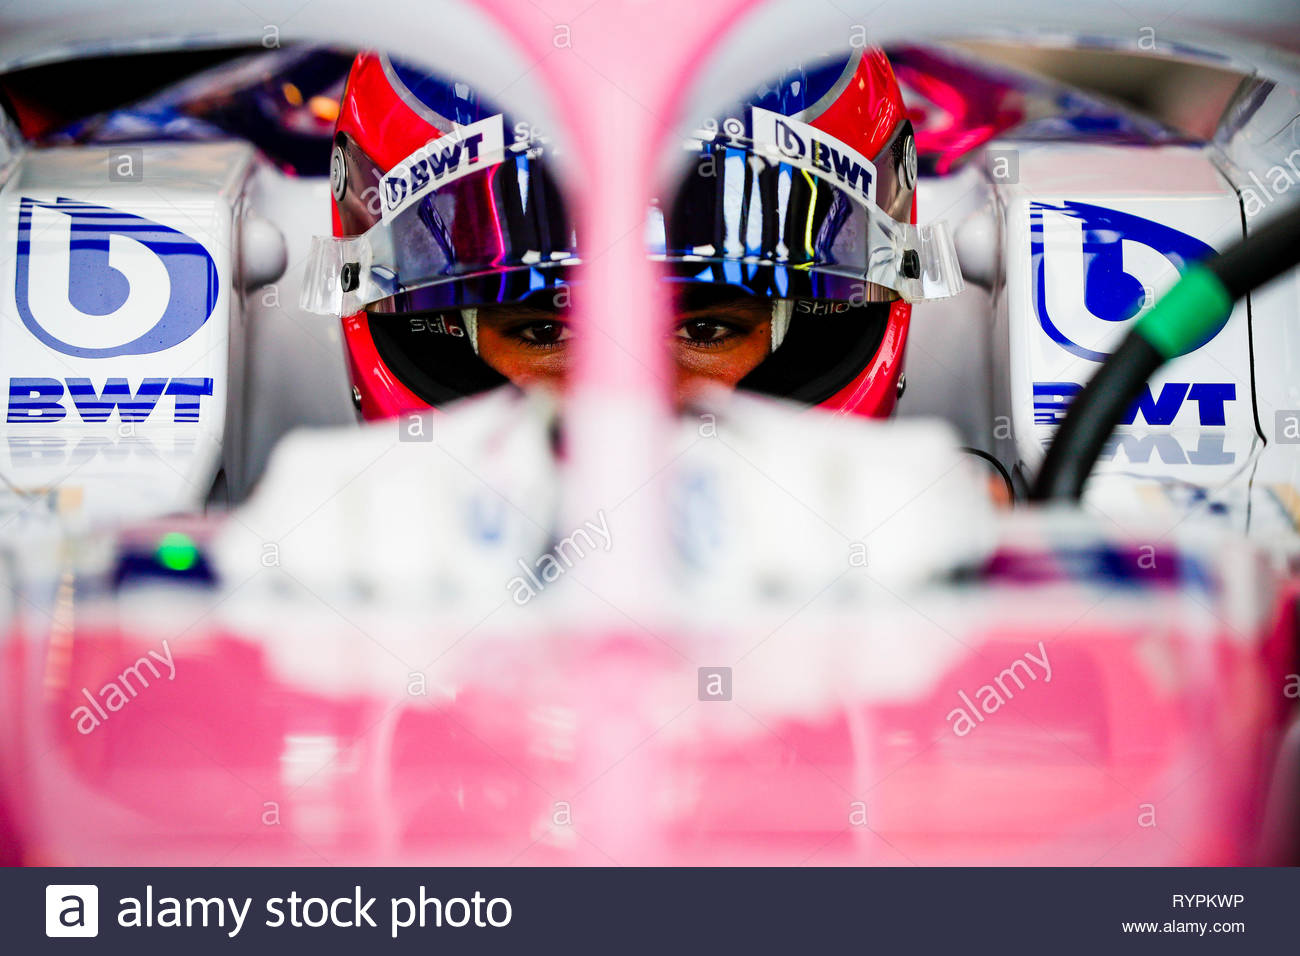 Australia. 14th Mar, 2019. MELBOURNE GRAND PRIX CIRCUIT, AUSTRALIA - MARCH 15: Lance Stroll, Racing Point during the Australian GP at Melbourne Grand Prix Circuit on March 15, 2019 in Melbourne Grand Prix Circuit, Australia. (Photo by Glenn Dunbar / LAT Images) Credit: Motorsport Images/Alamy Live News - Stock Image